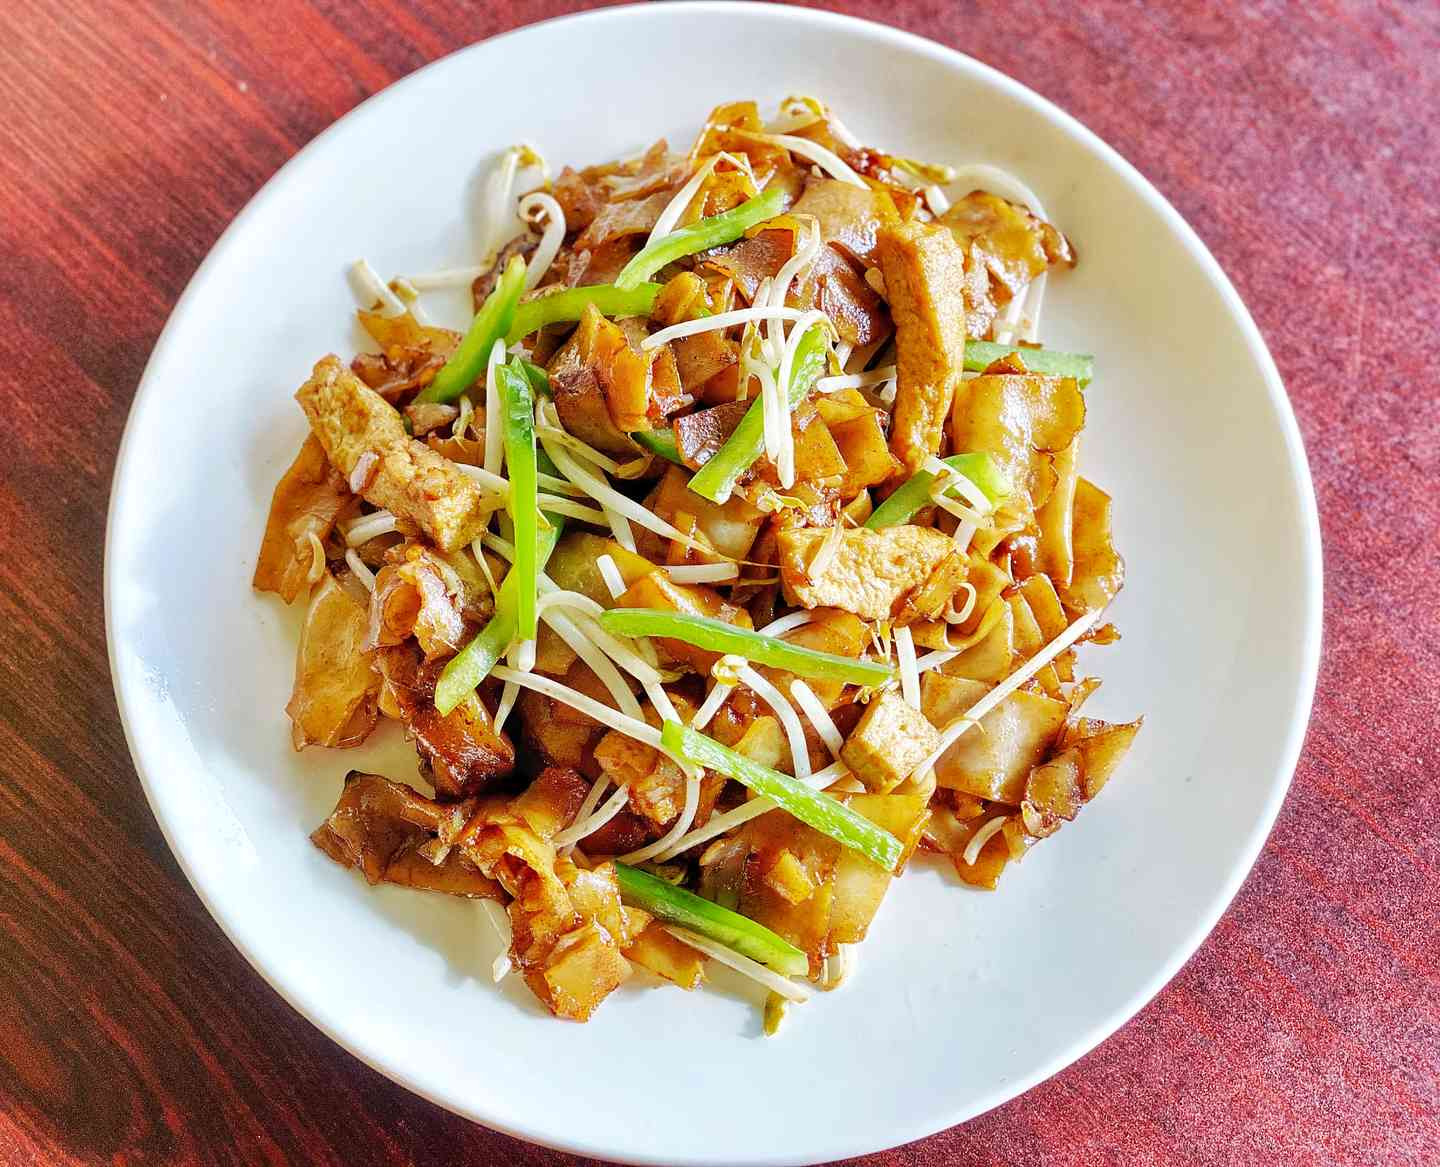 Chow Kway Teow 炒河粉